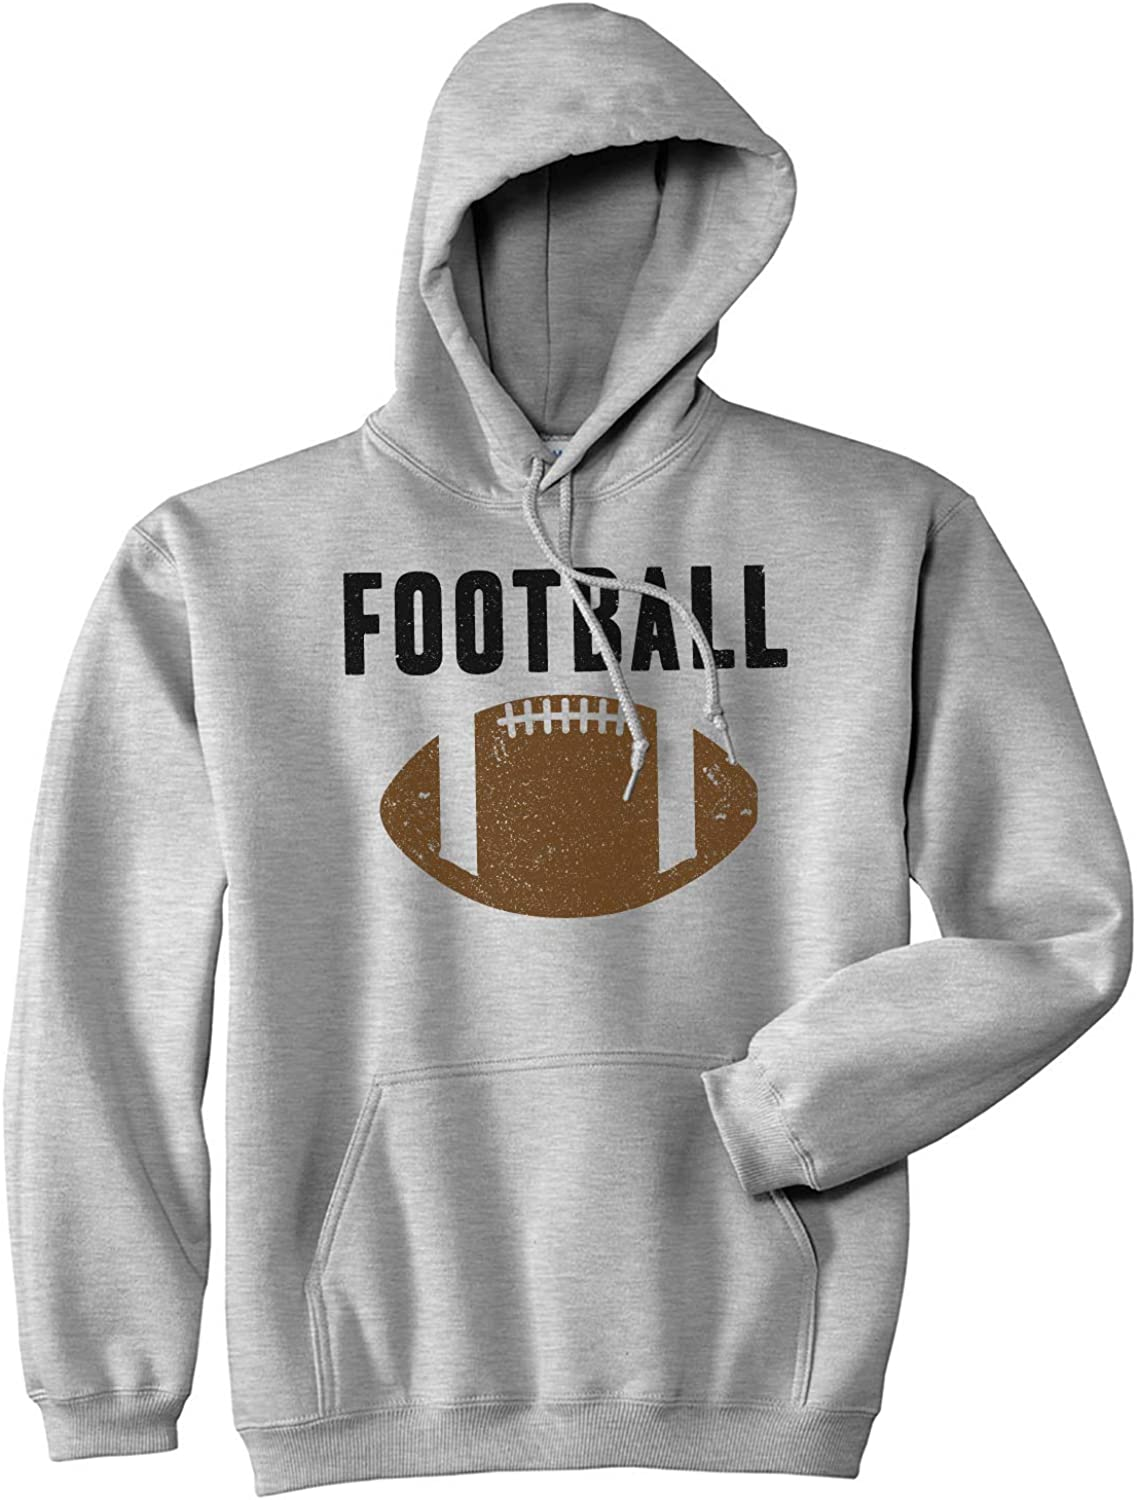 Football Love Back Print Long Sleeve Sweater for Men